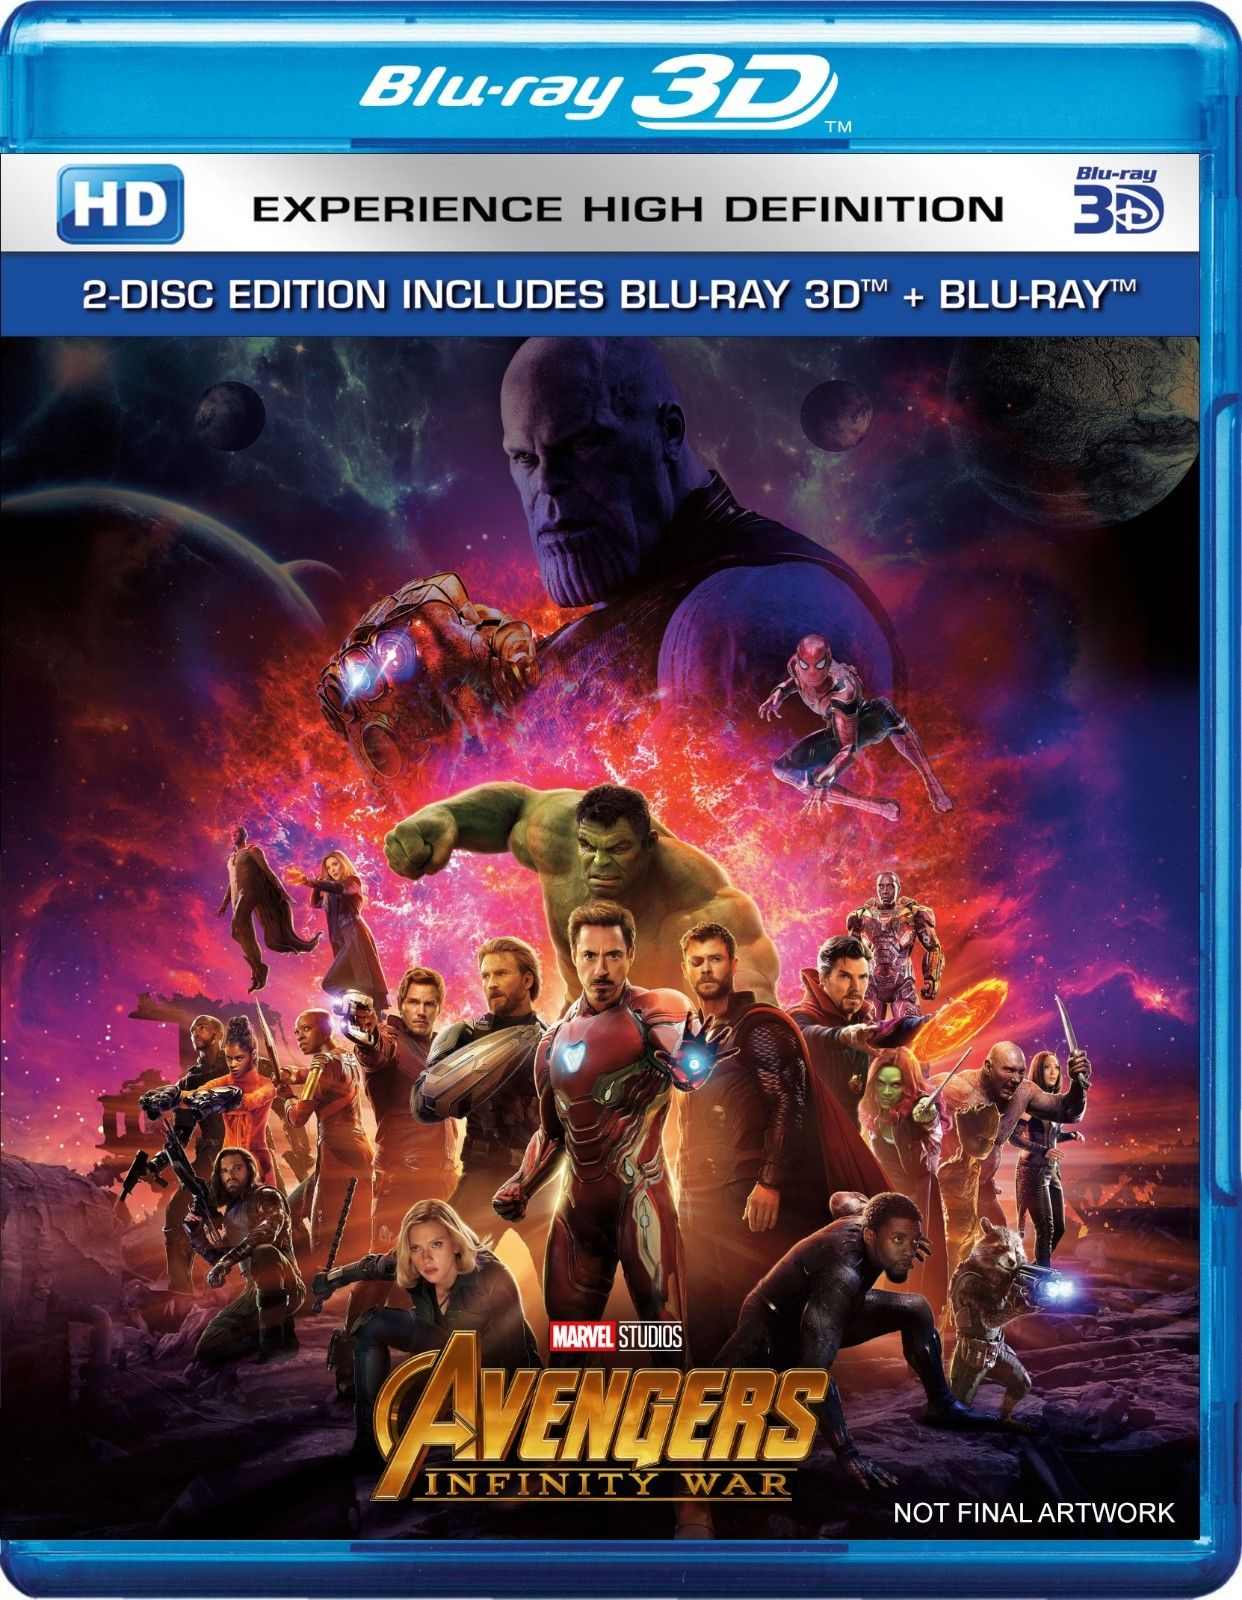 Avengers: Infinity War Digital HD Date Revealed, Pre-Orders